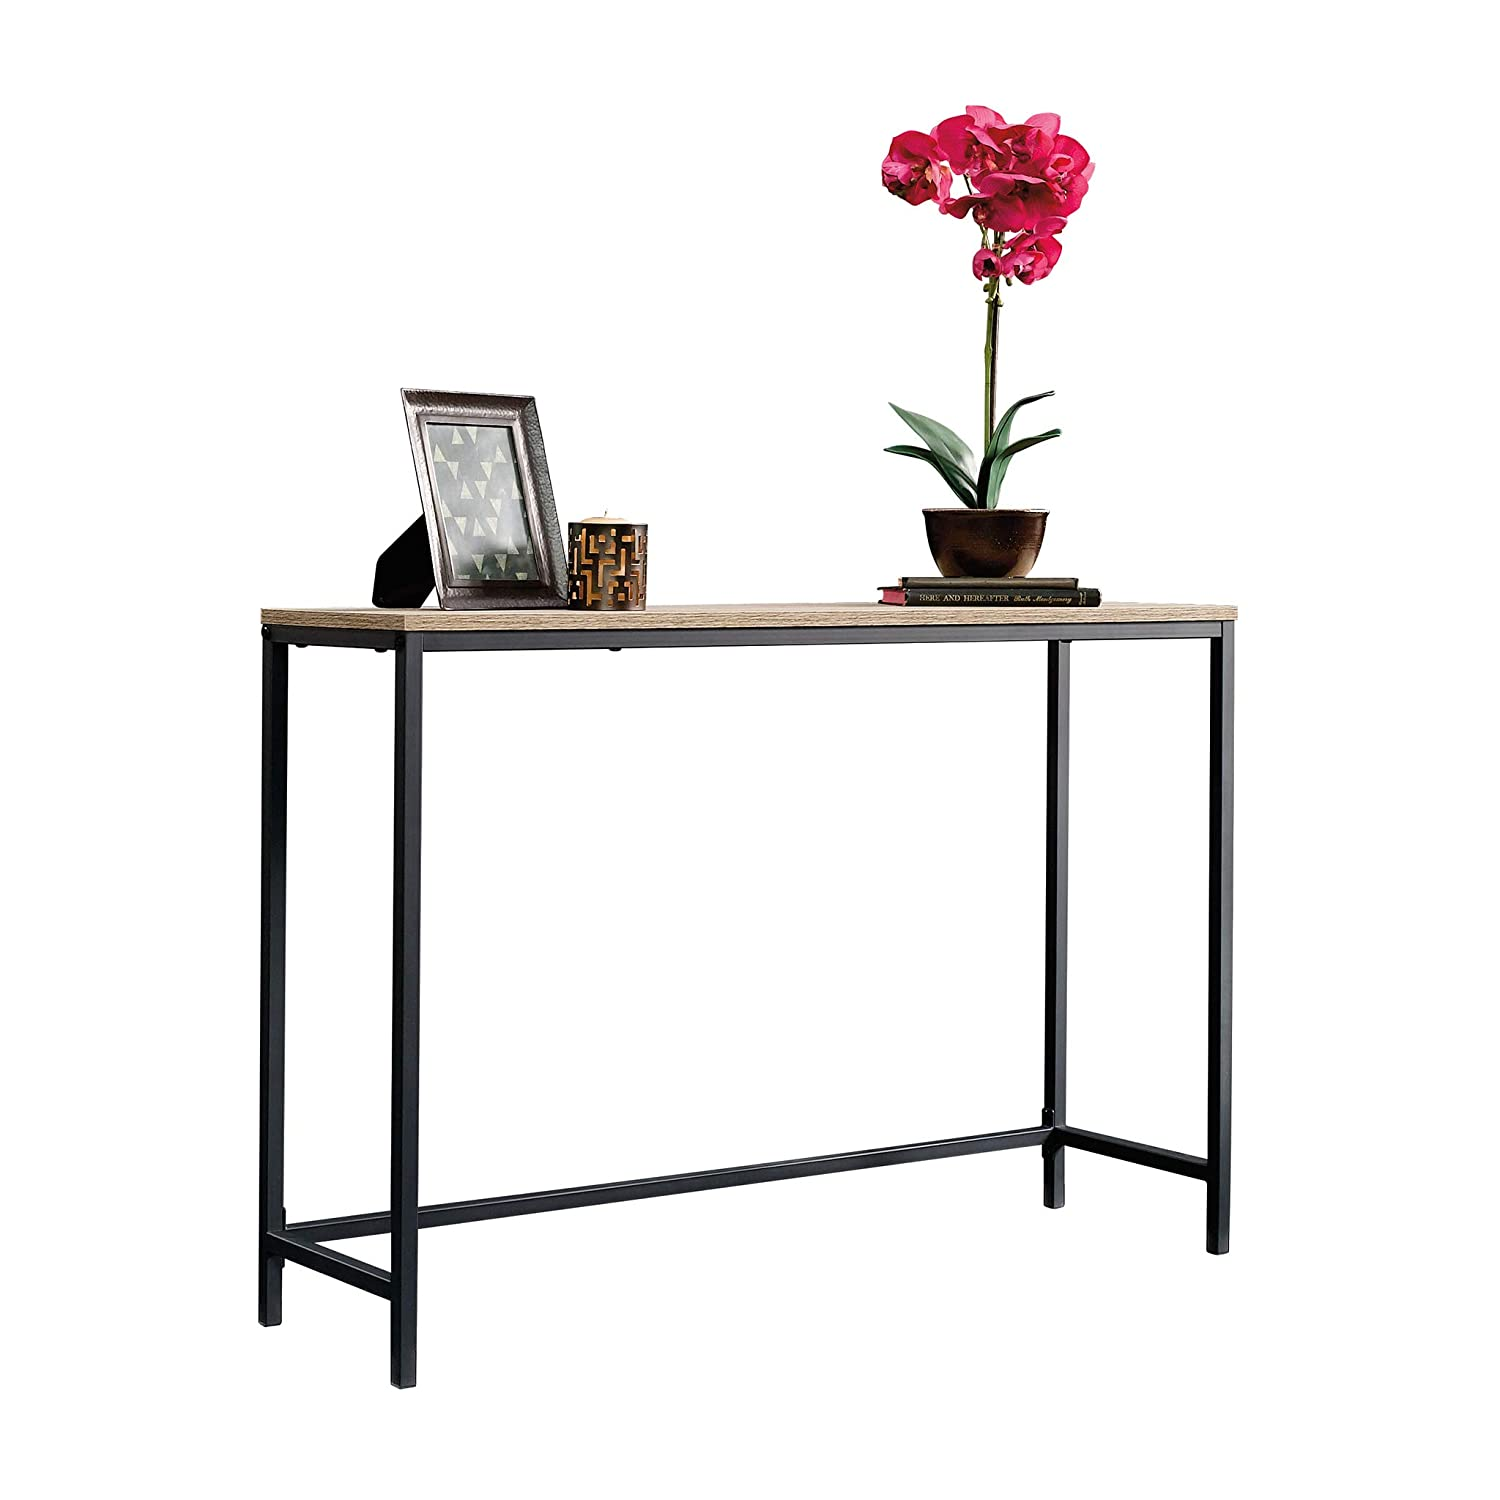 15 Small Apartment Desks For Maximizing Your Apartment Space ...